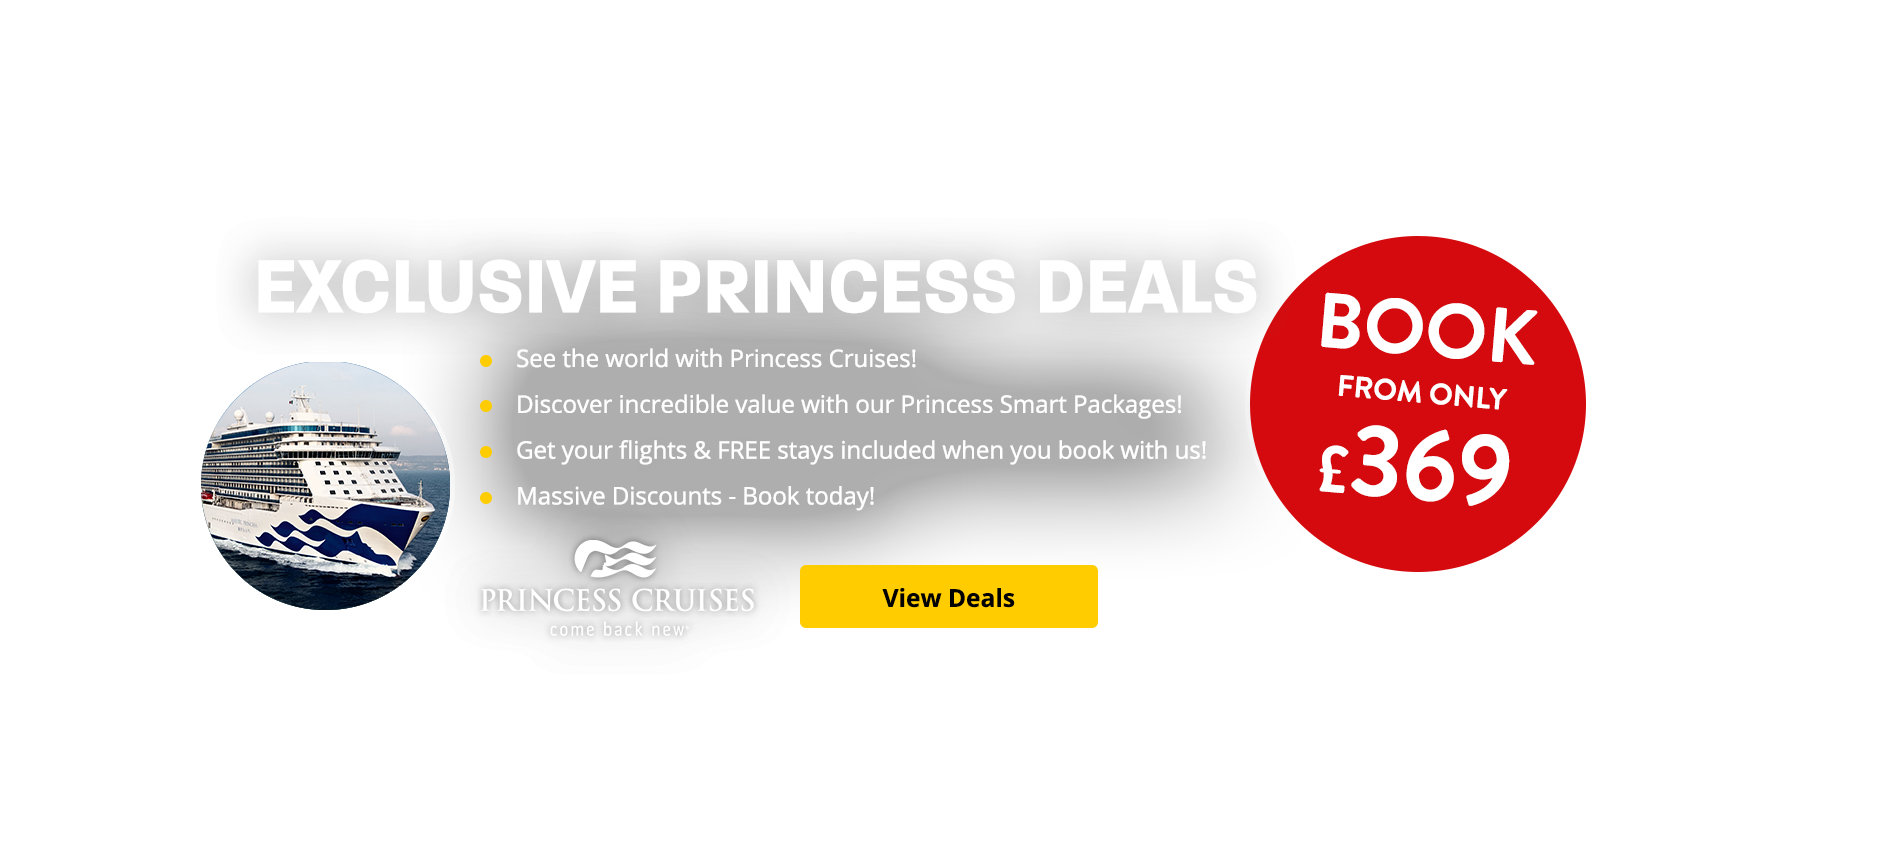 See the world with Princess Cruises! Discover incredible value with our Princess Smart Packages! Get your flights & FREE stays included when you book with us! Massive Discounts - Book today!